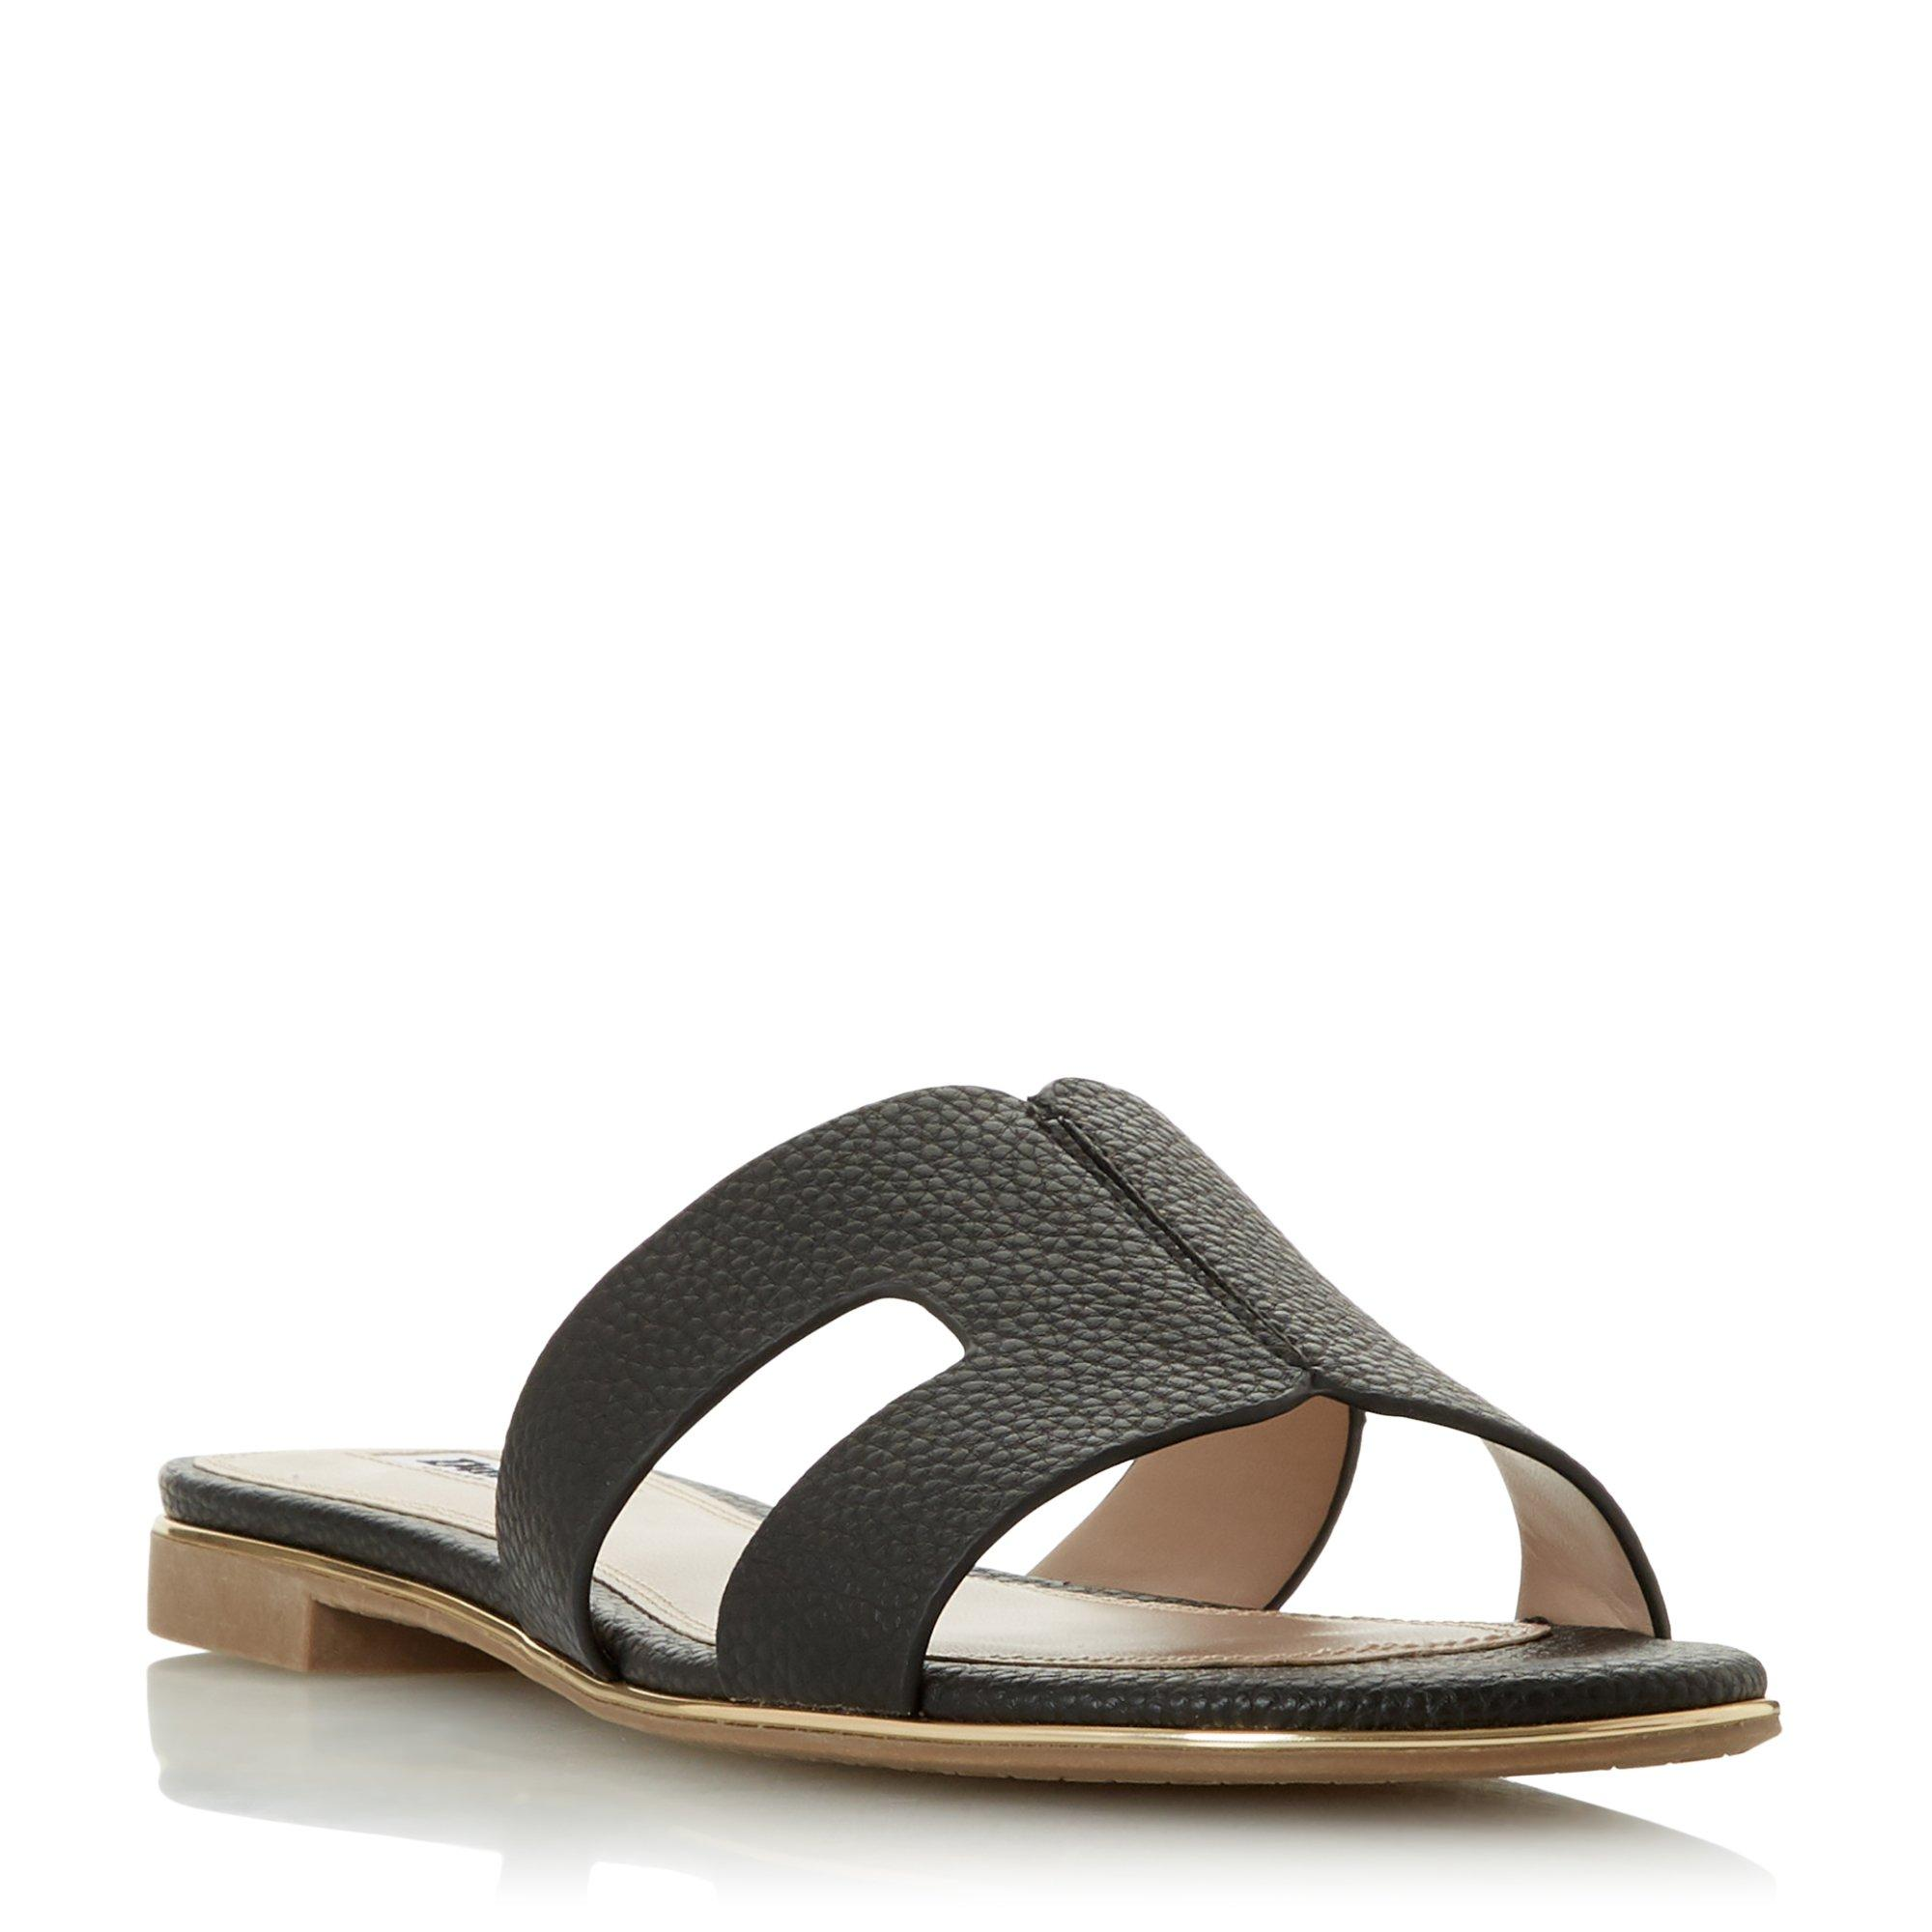 LOOPER - LOOPER - Caged Vamp Slider Sandal